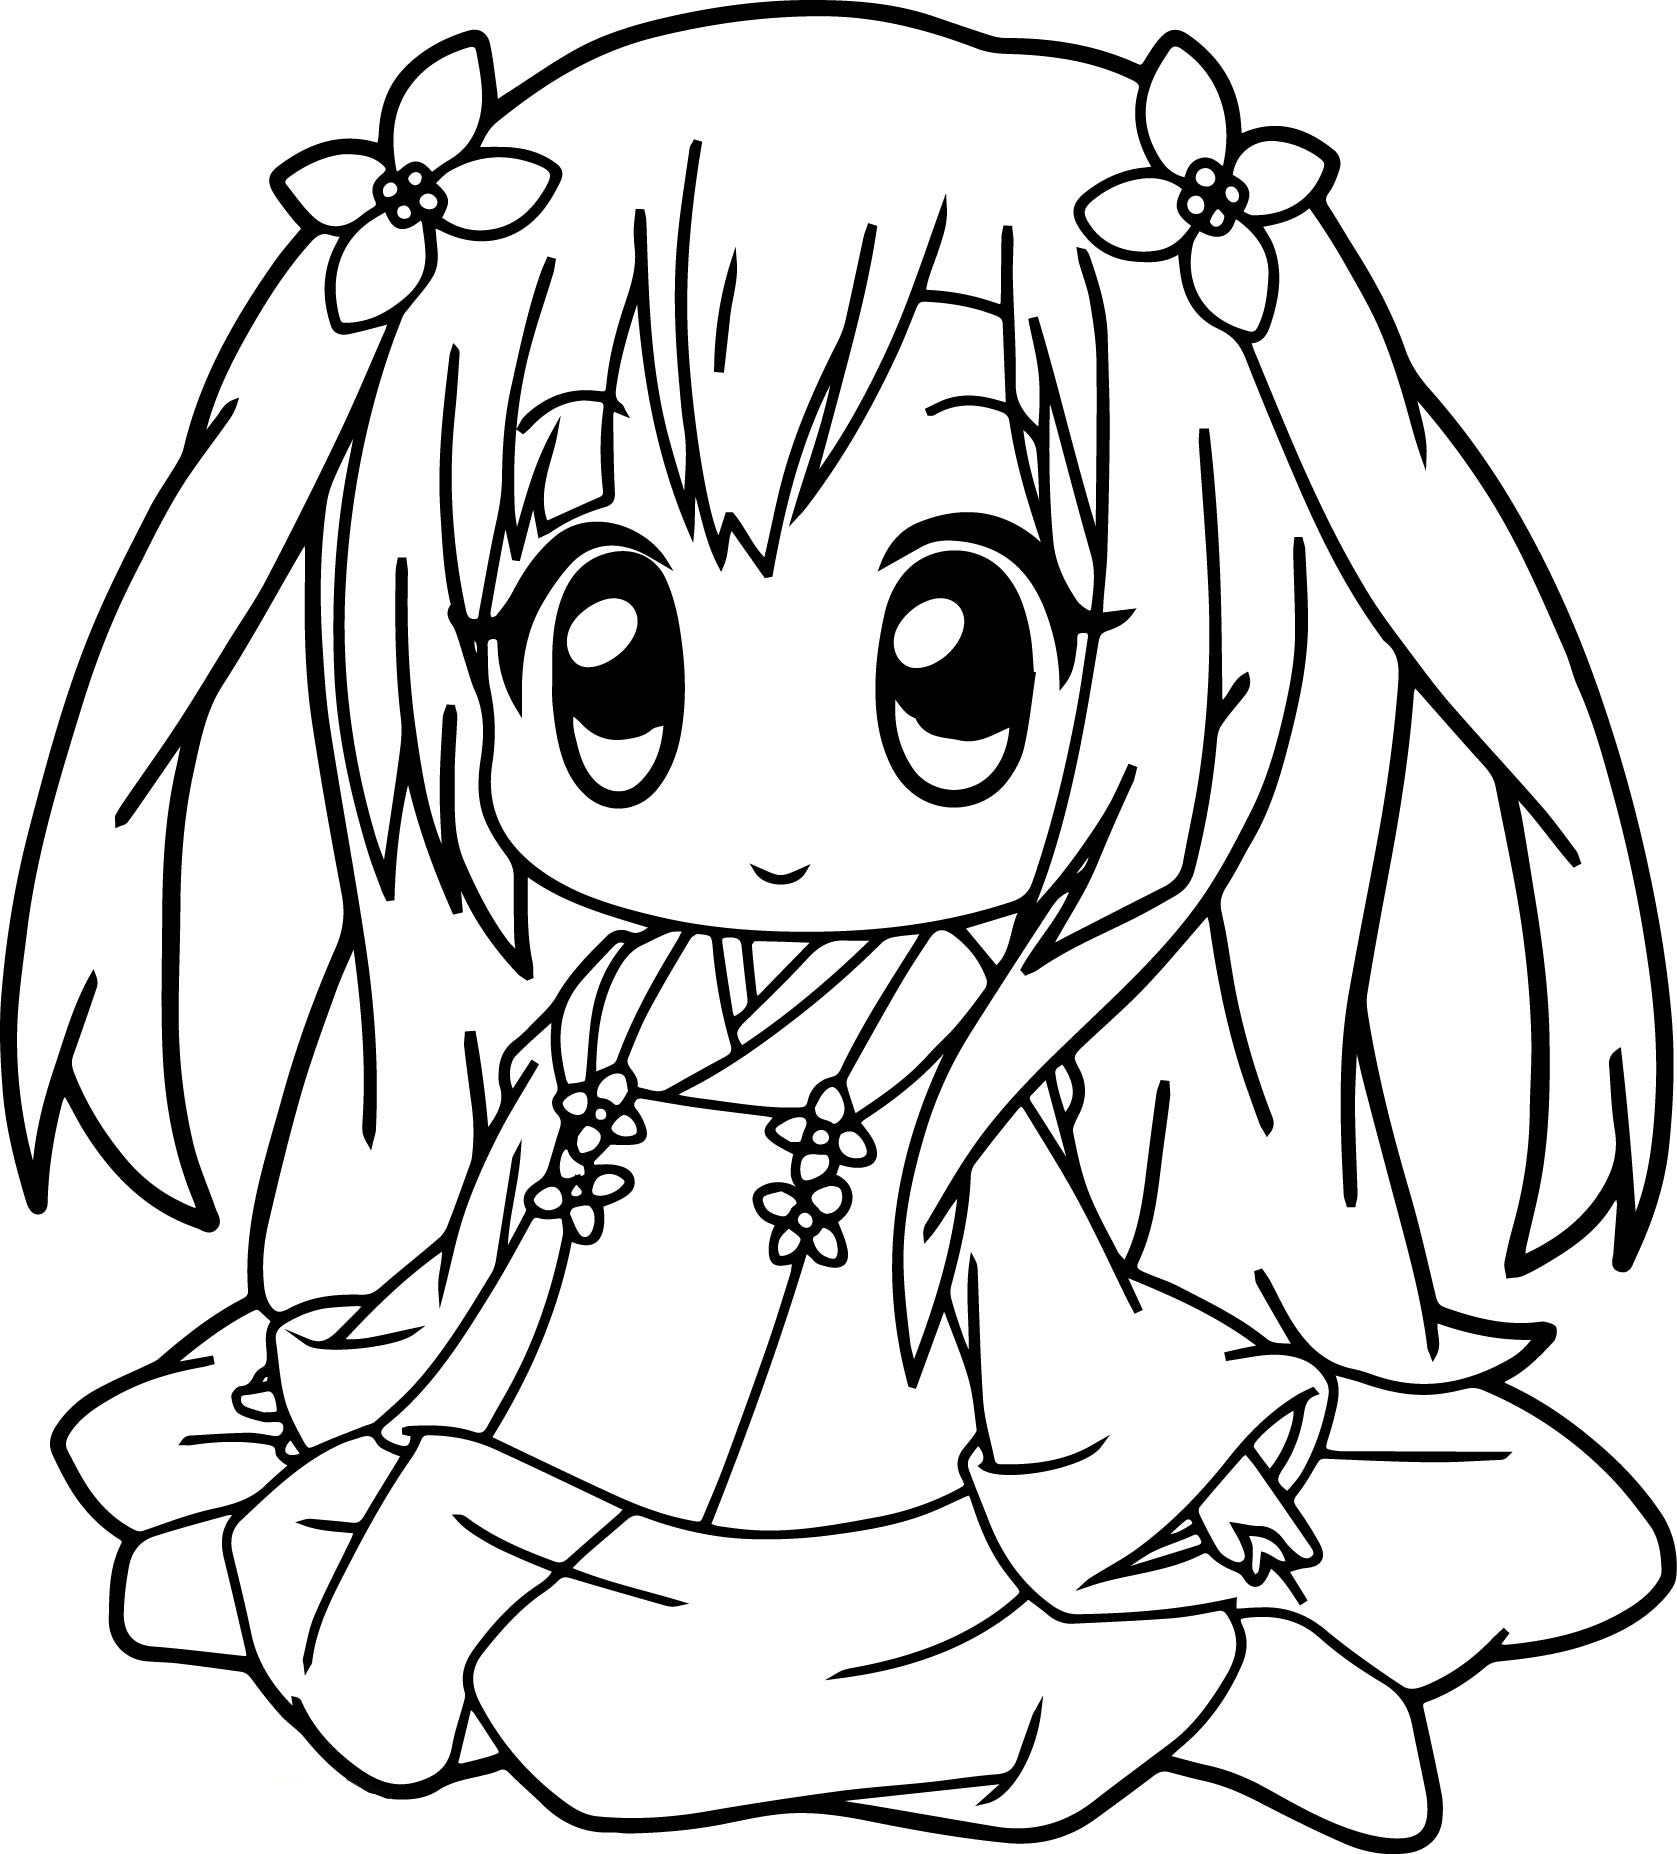 coloring pages for kids kawaii kawaii coloring pages to download and print for free pages kids coloring kawaii for